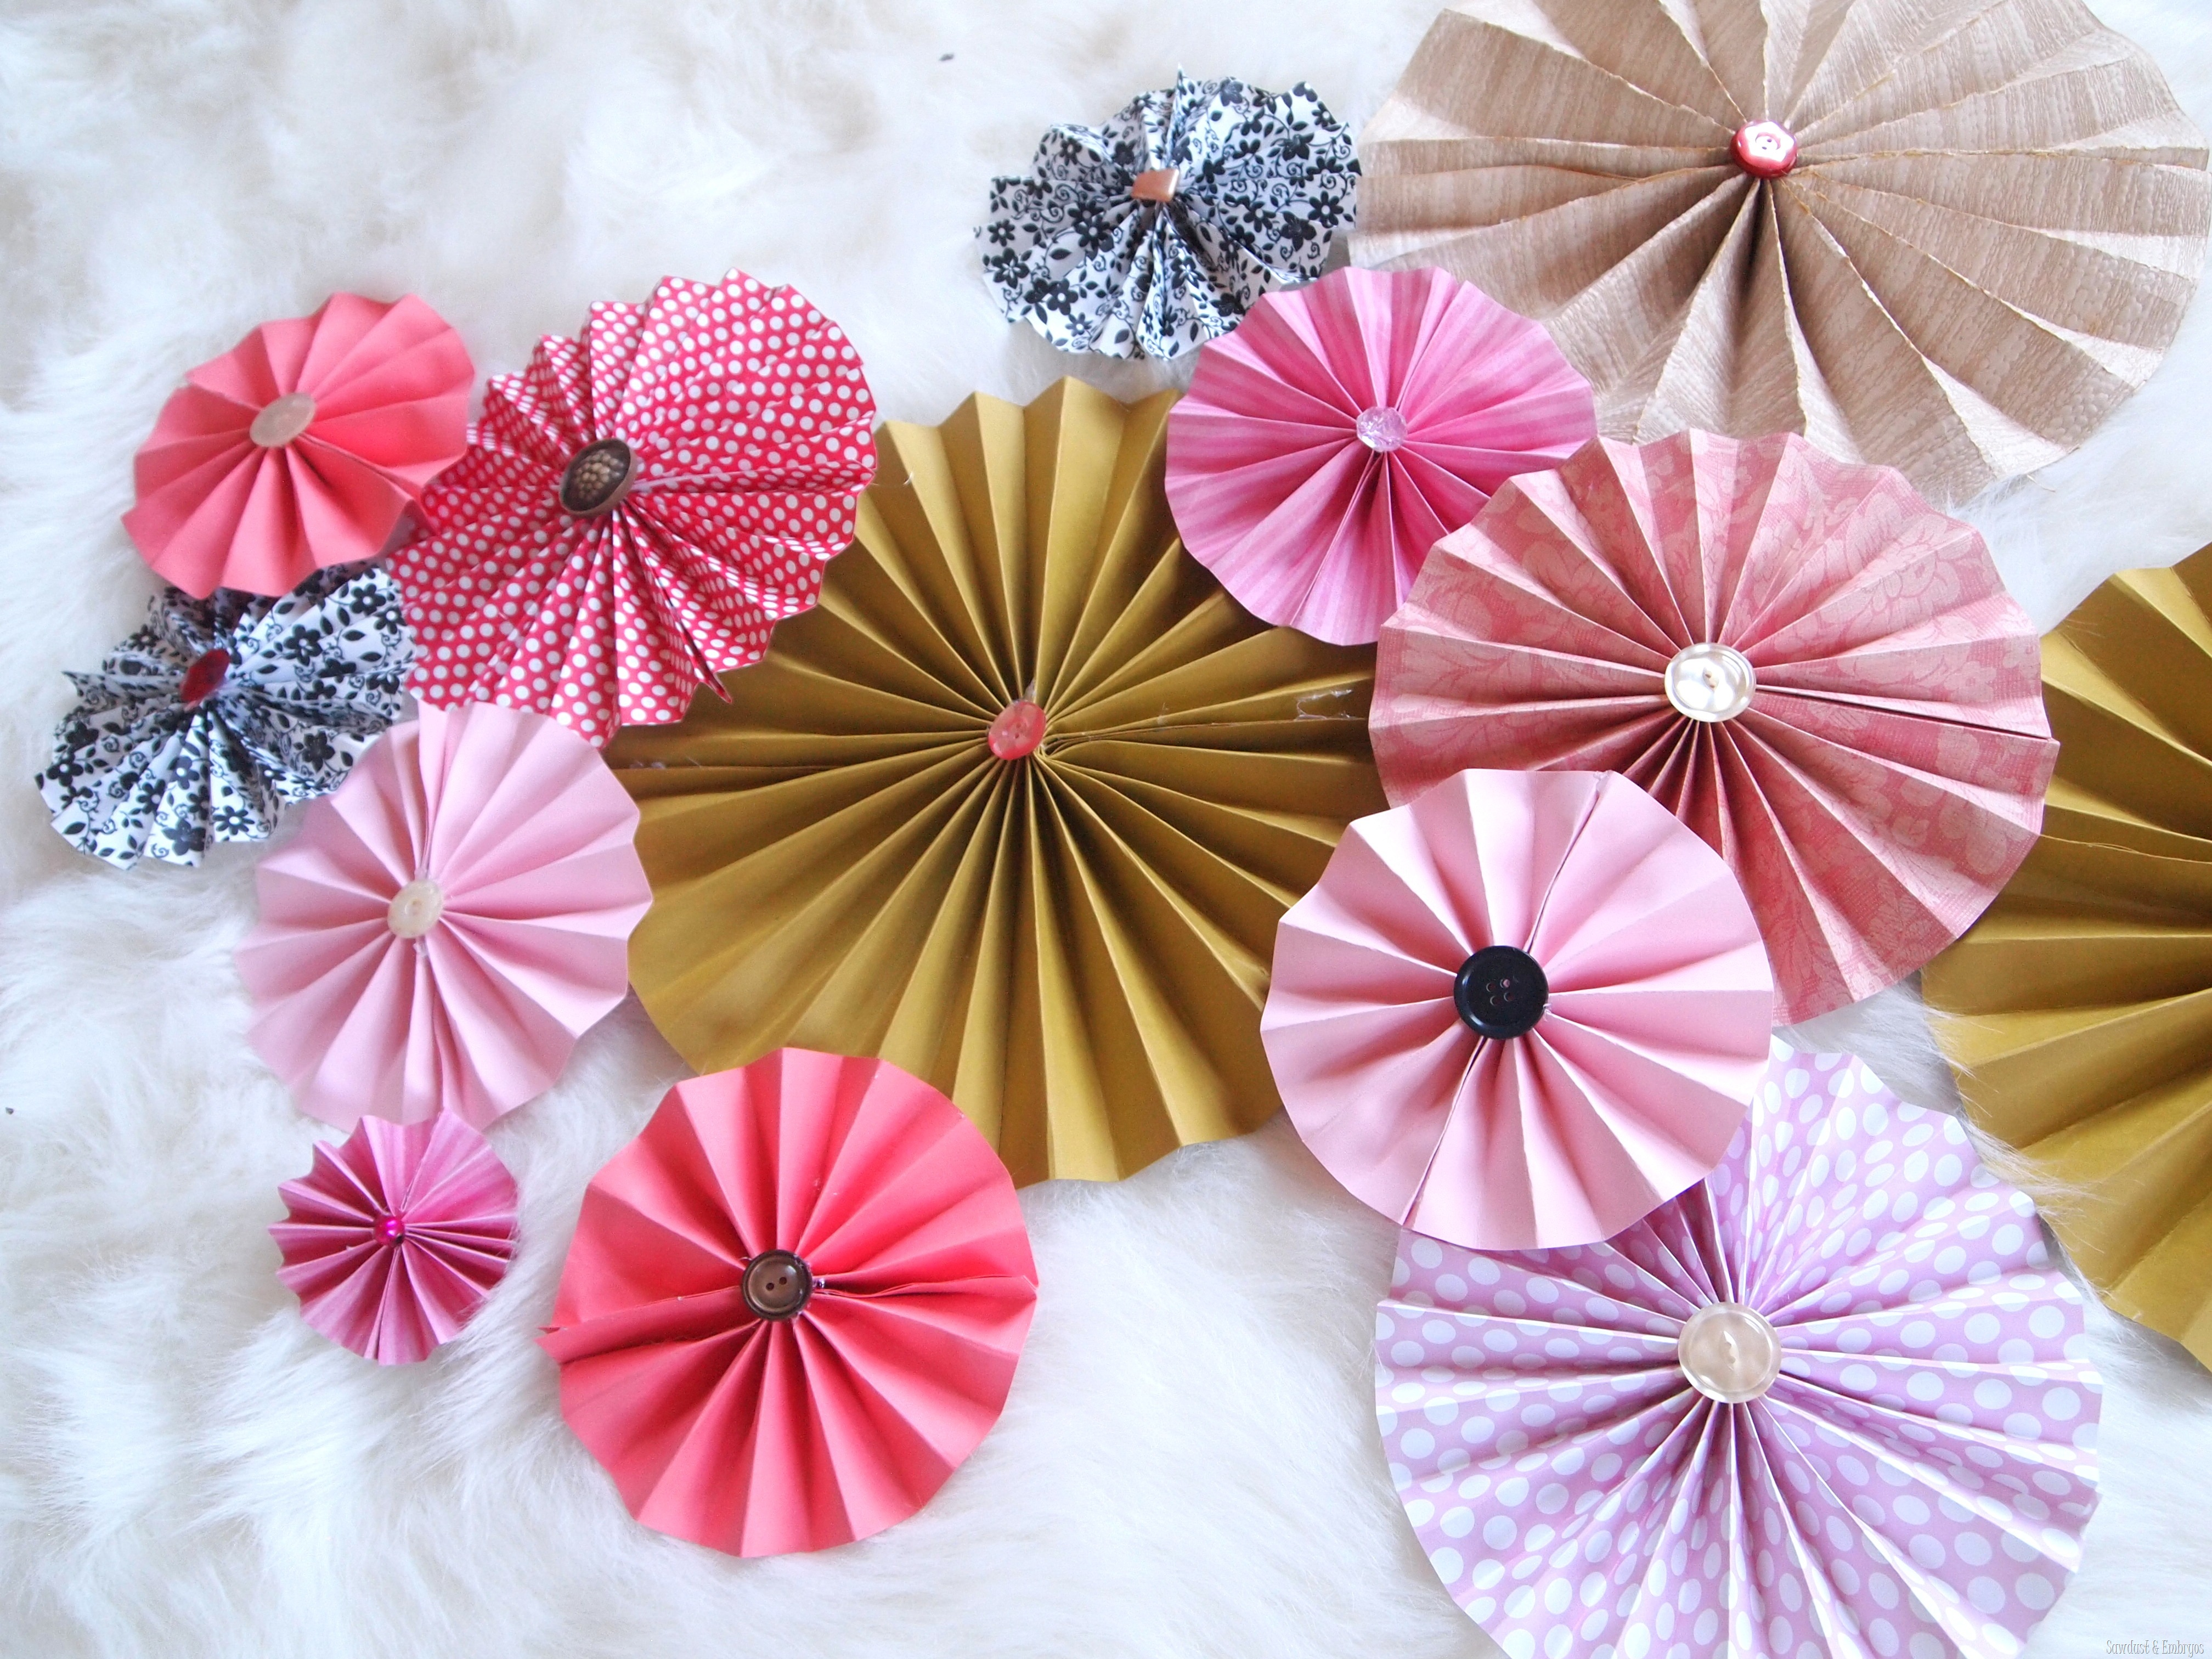 DIY Paper Pinwheel Wall Collage Tutorial  Reality Daydream